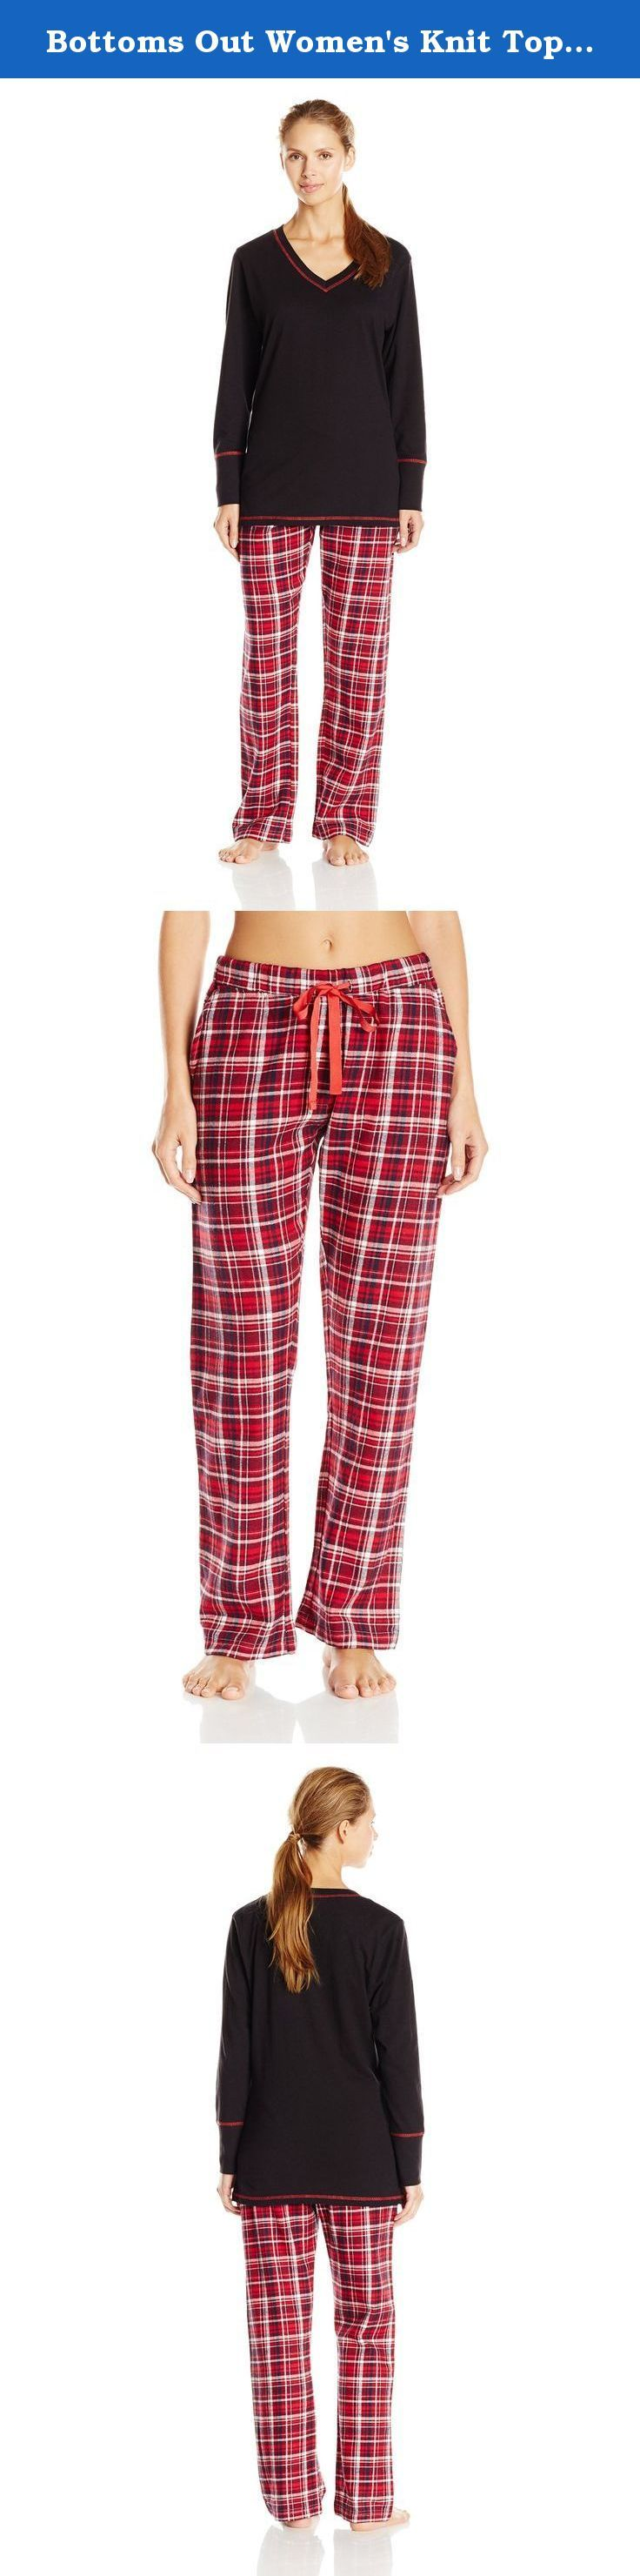 Bottoms Out Women's Knit Top with Flannel Pant Pajama Set, Red/Burgundy, Large. Ladies pajama set with V-neck knit top and plaid flannel pants.